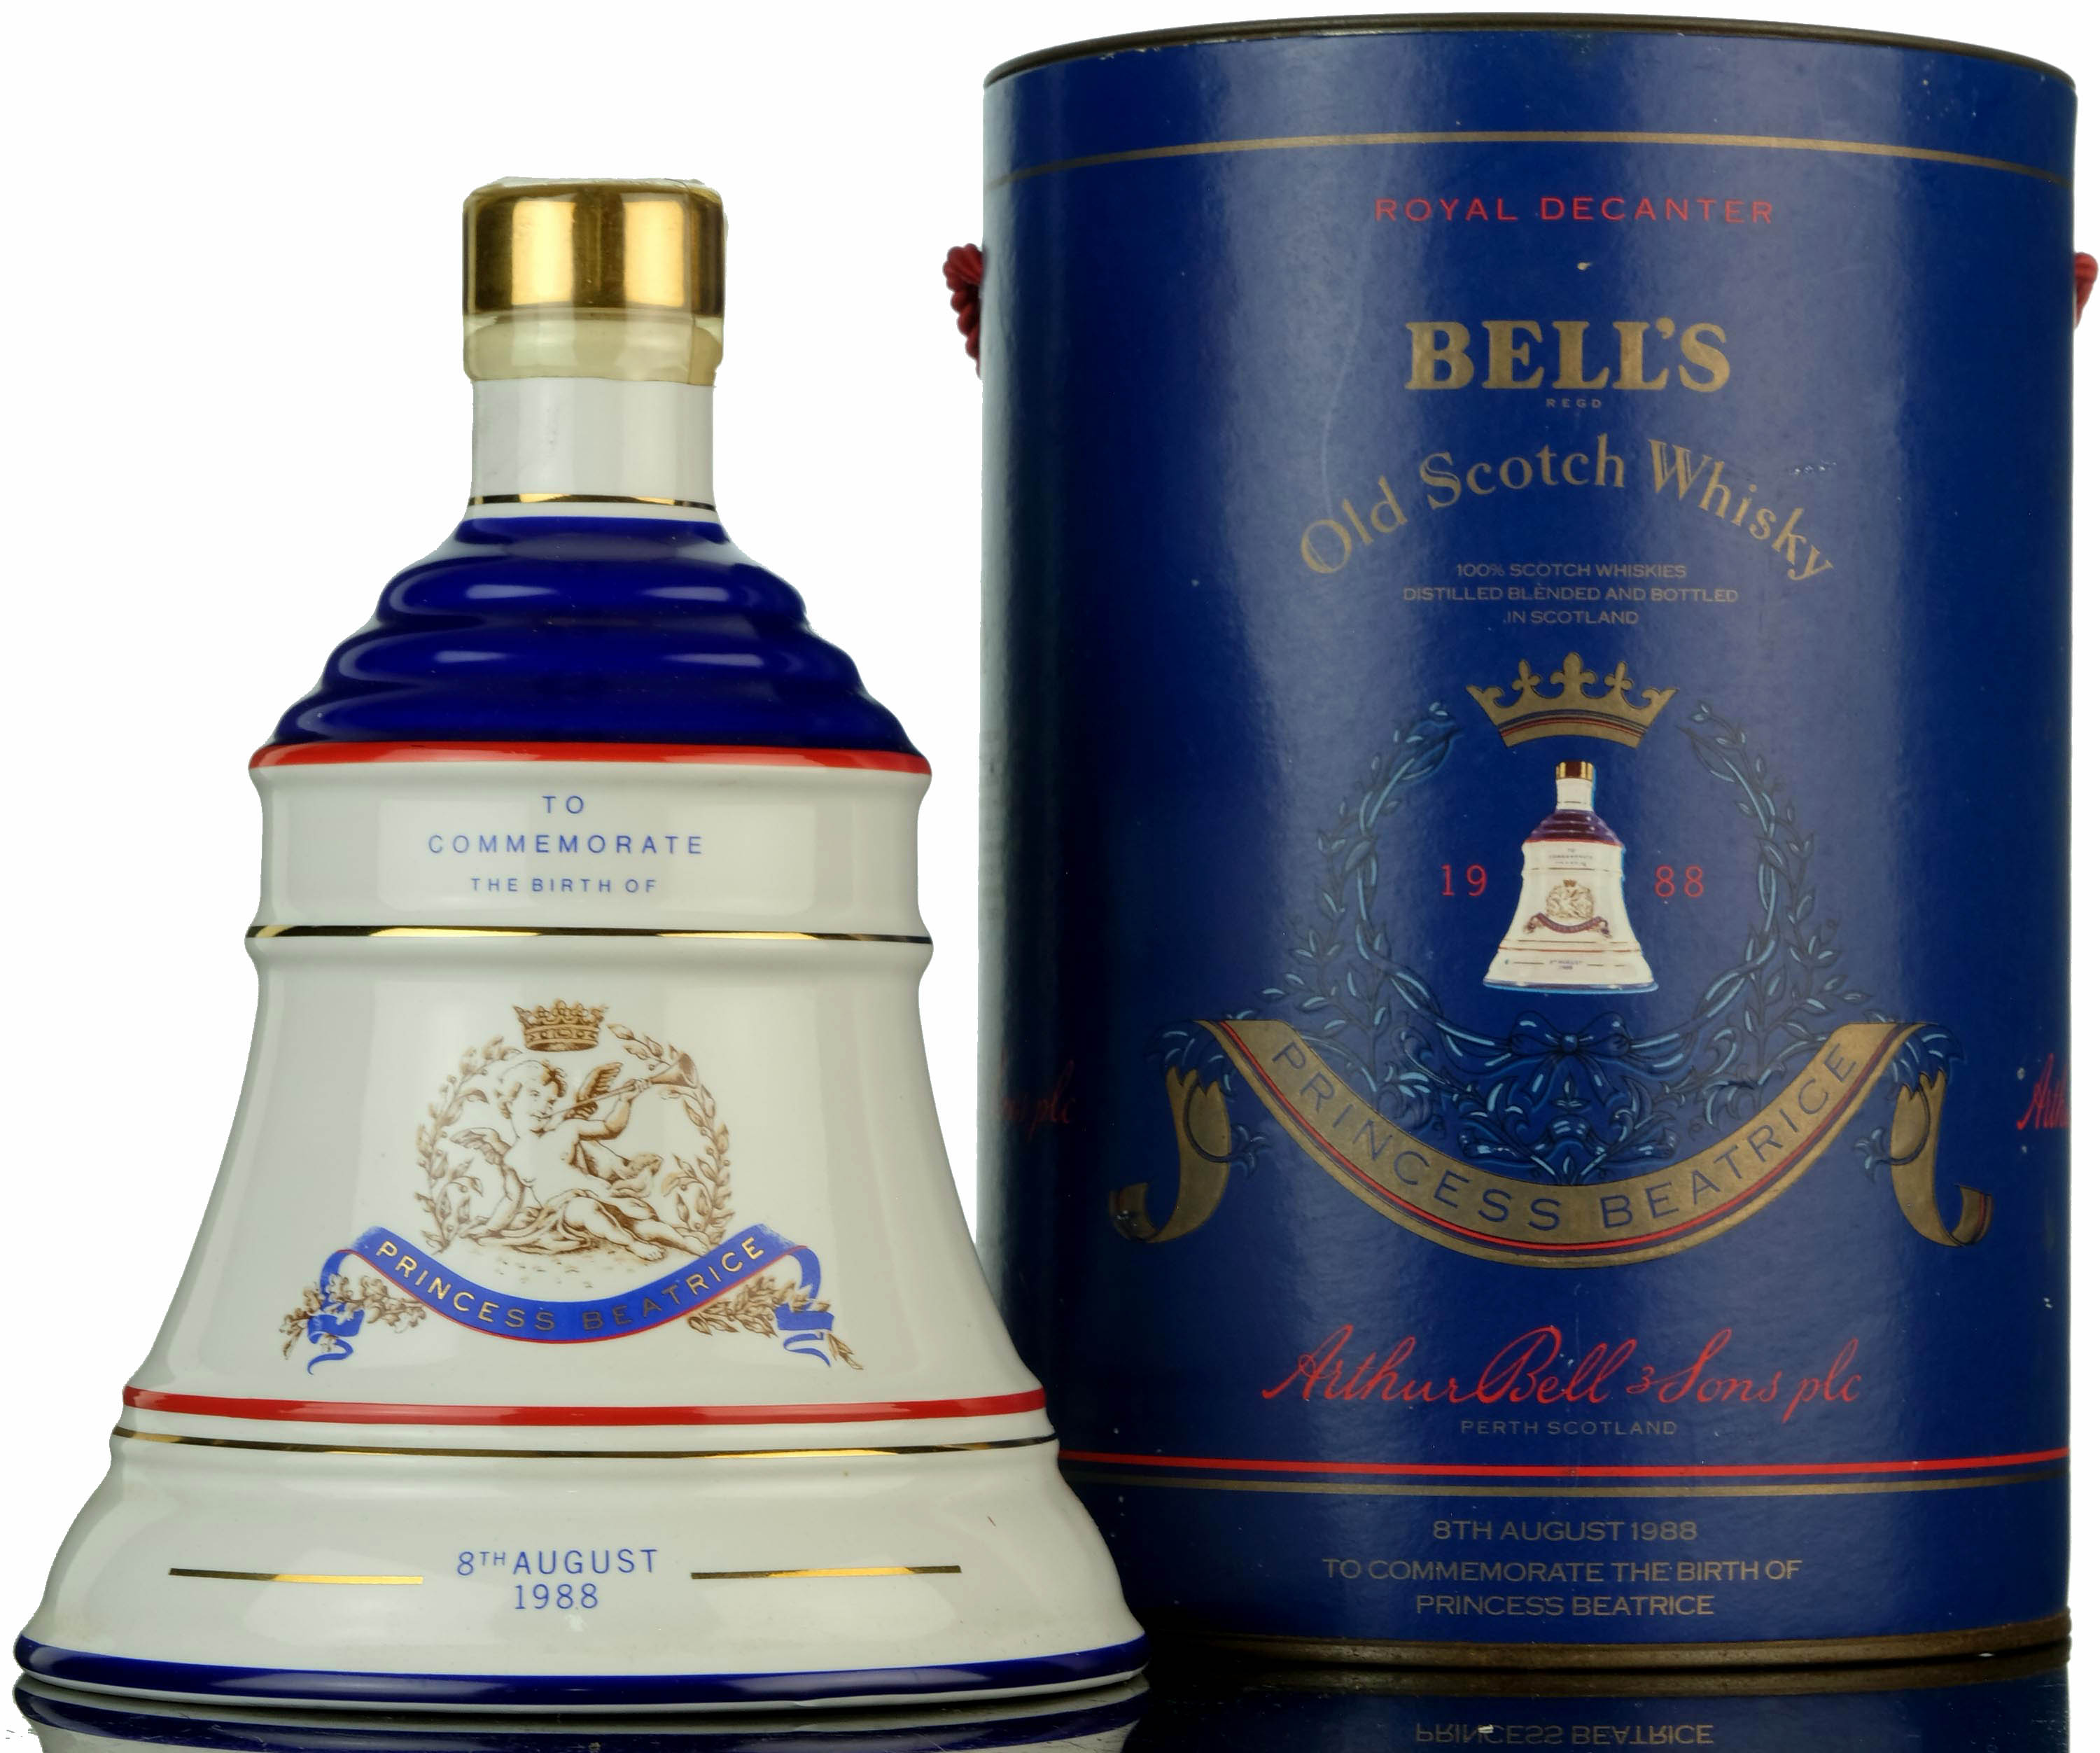 bells to commemorate the birth of princess beatrice 1988